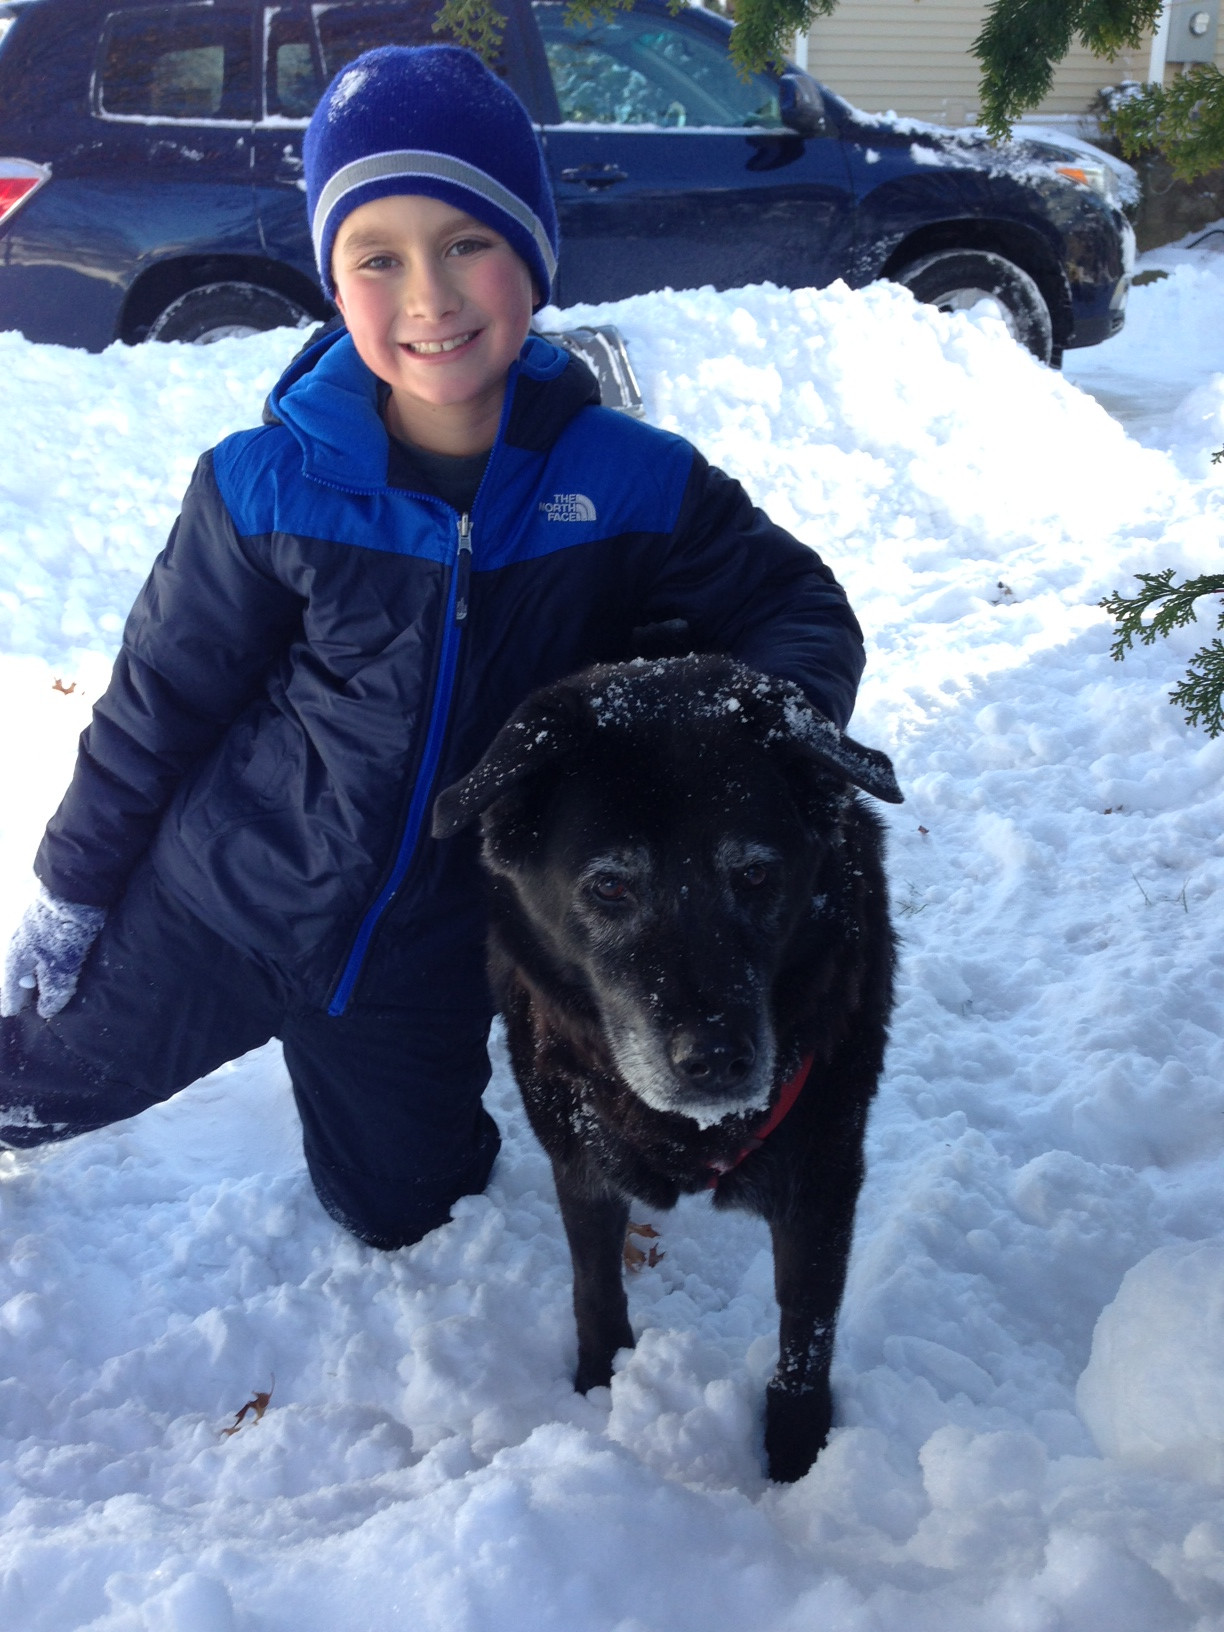 Matthew Wallach, 9, enjoyed some time in the snow with his dog, Samantha, after getting the shoveling done.